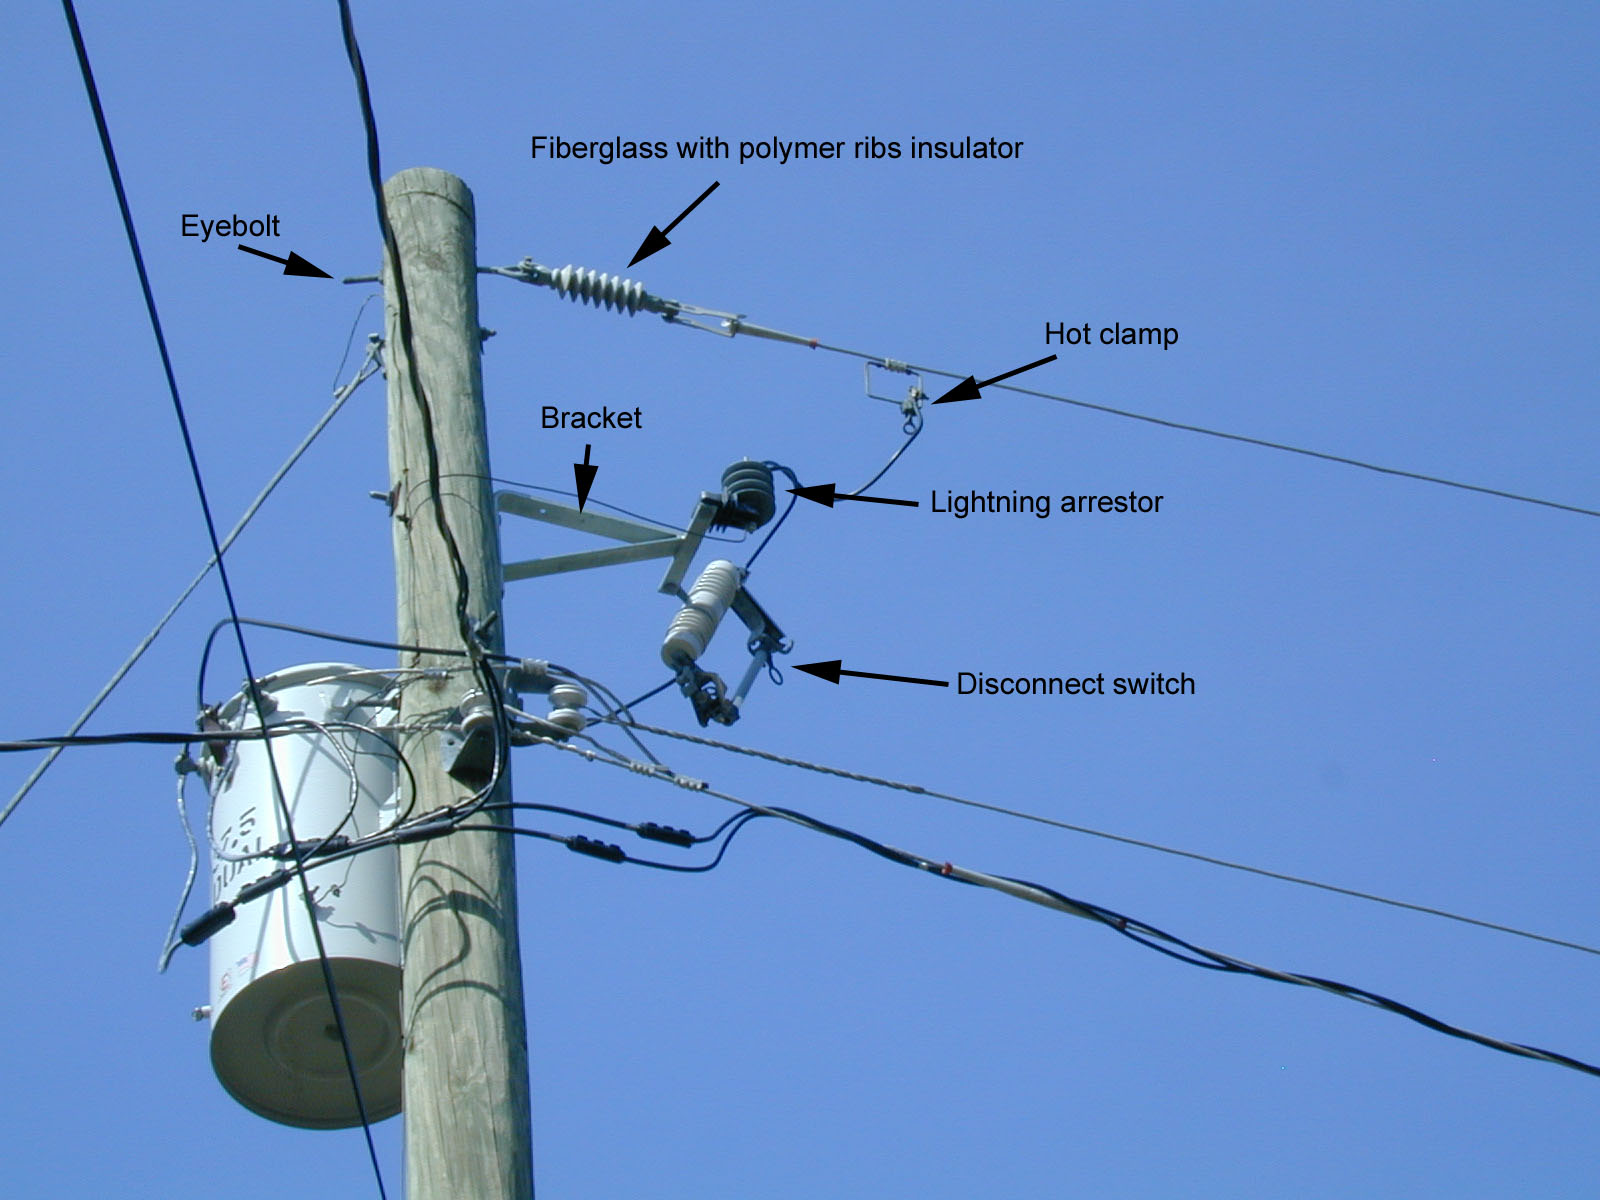 one way pull switch wiring diagram parts of a church eli5: how can the power company remotely shut off to single house? : explainlikeimfive